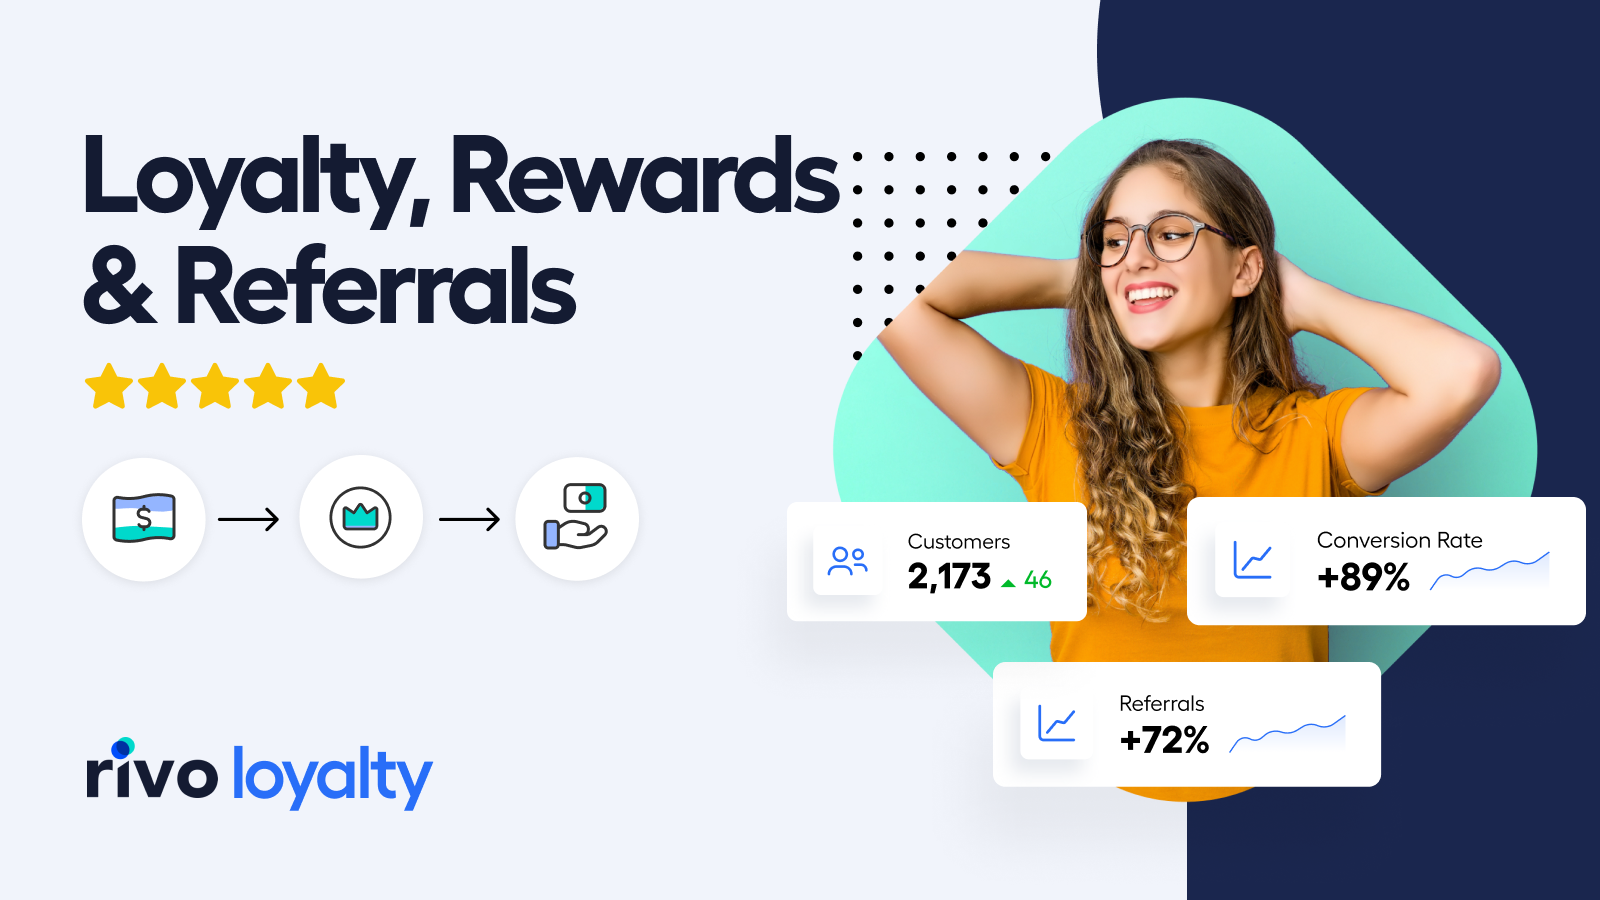 Loyalty Program for Rewards and Referrals